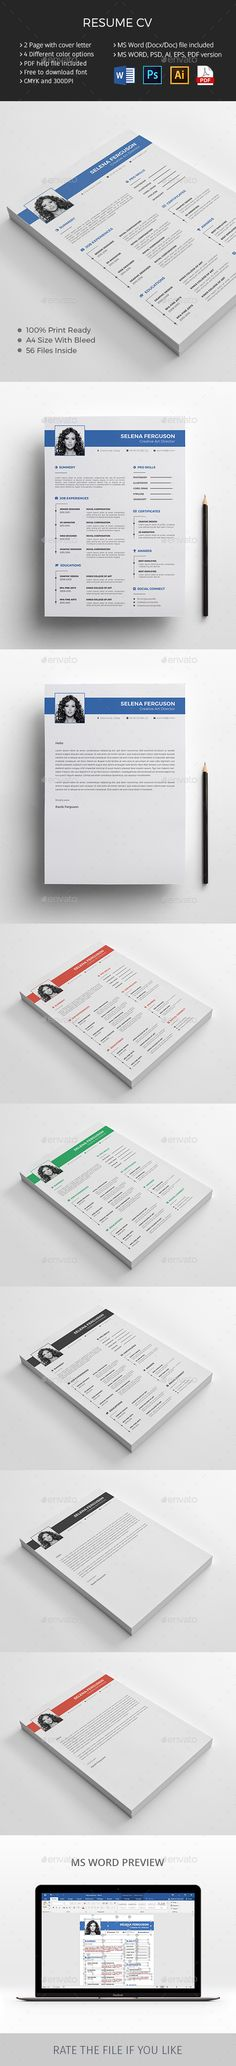 Resume CV Resumes Stationery Download here